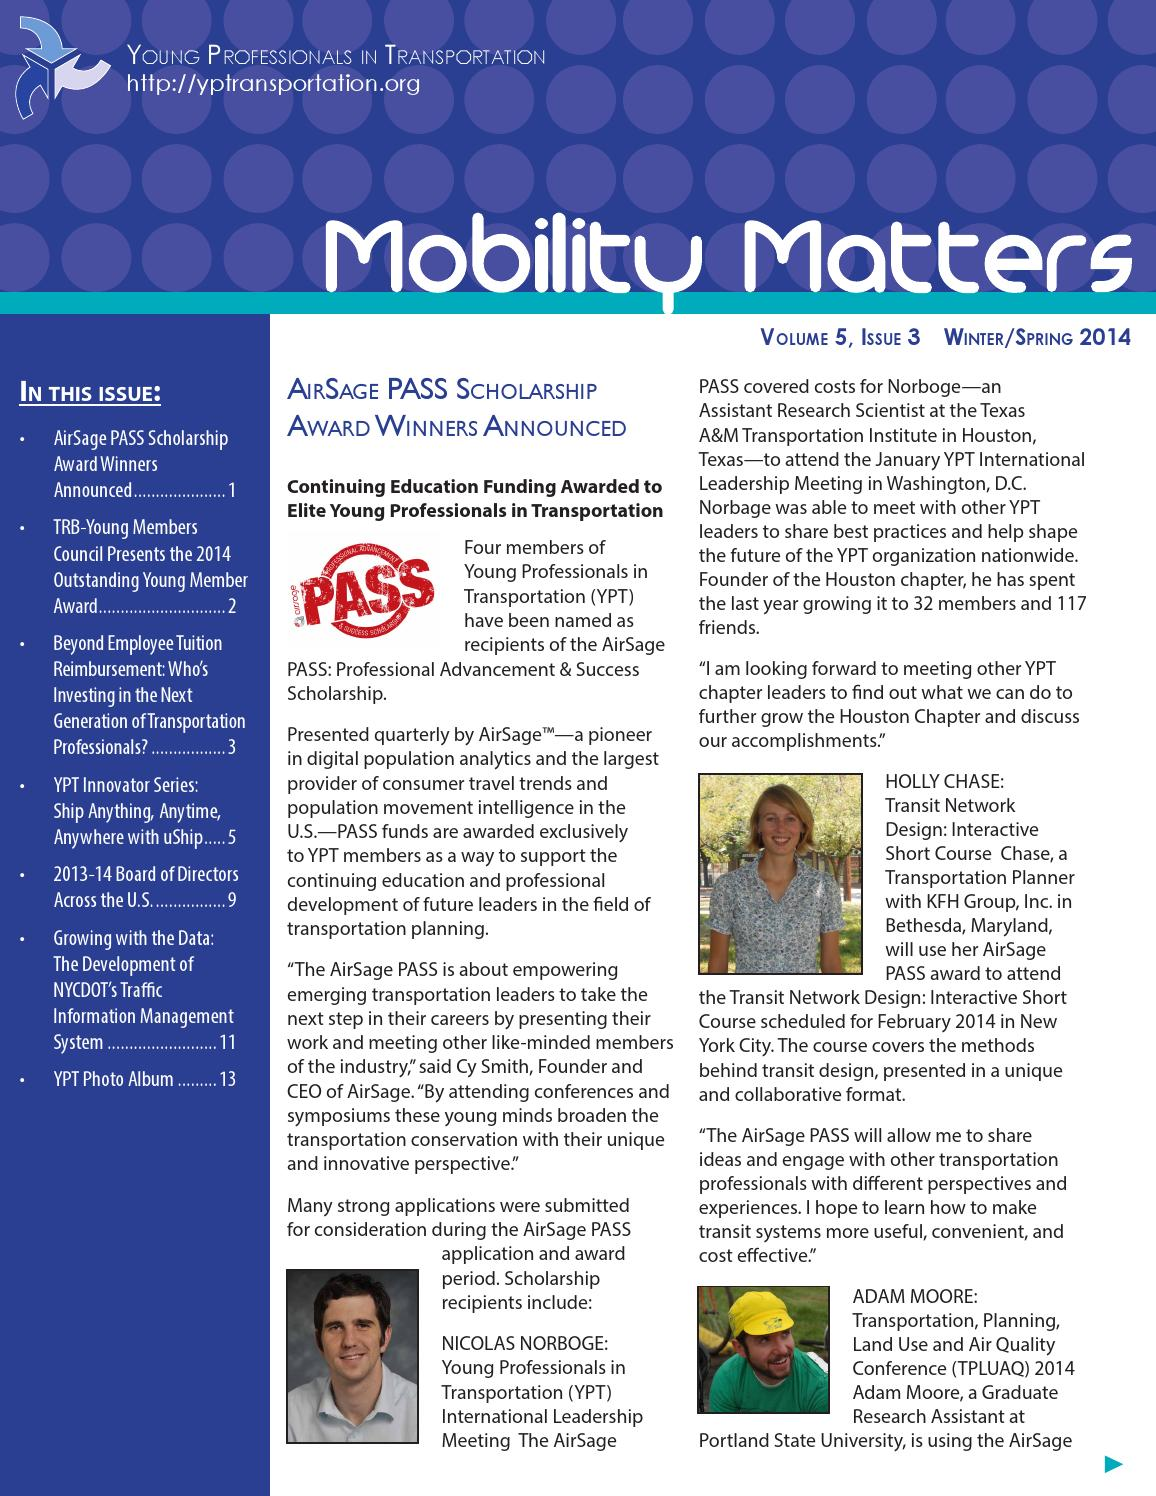 YPT Mobility Matters Winter/Spring 2014 by YP Transportation